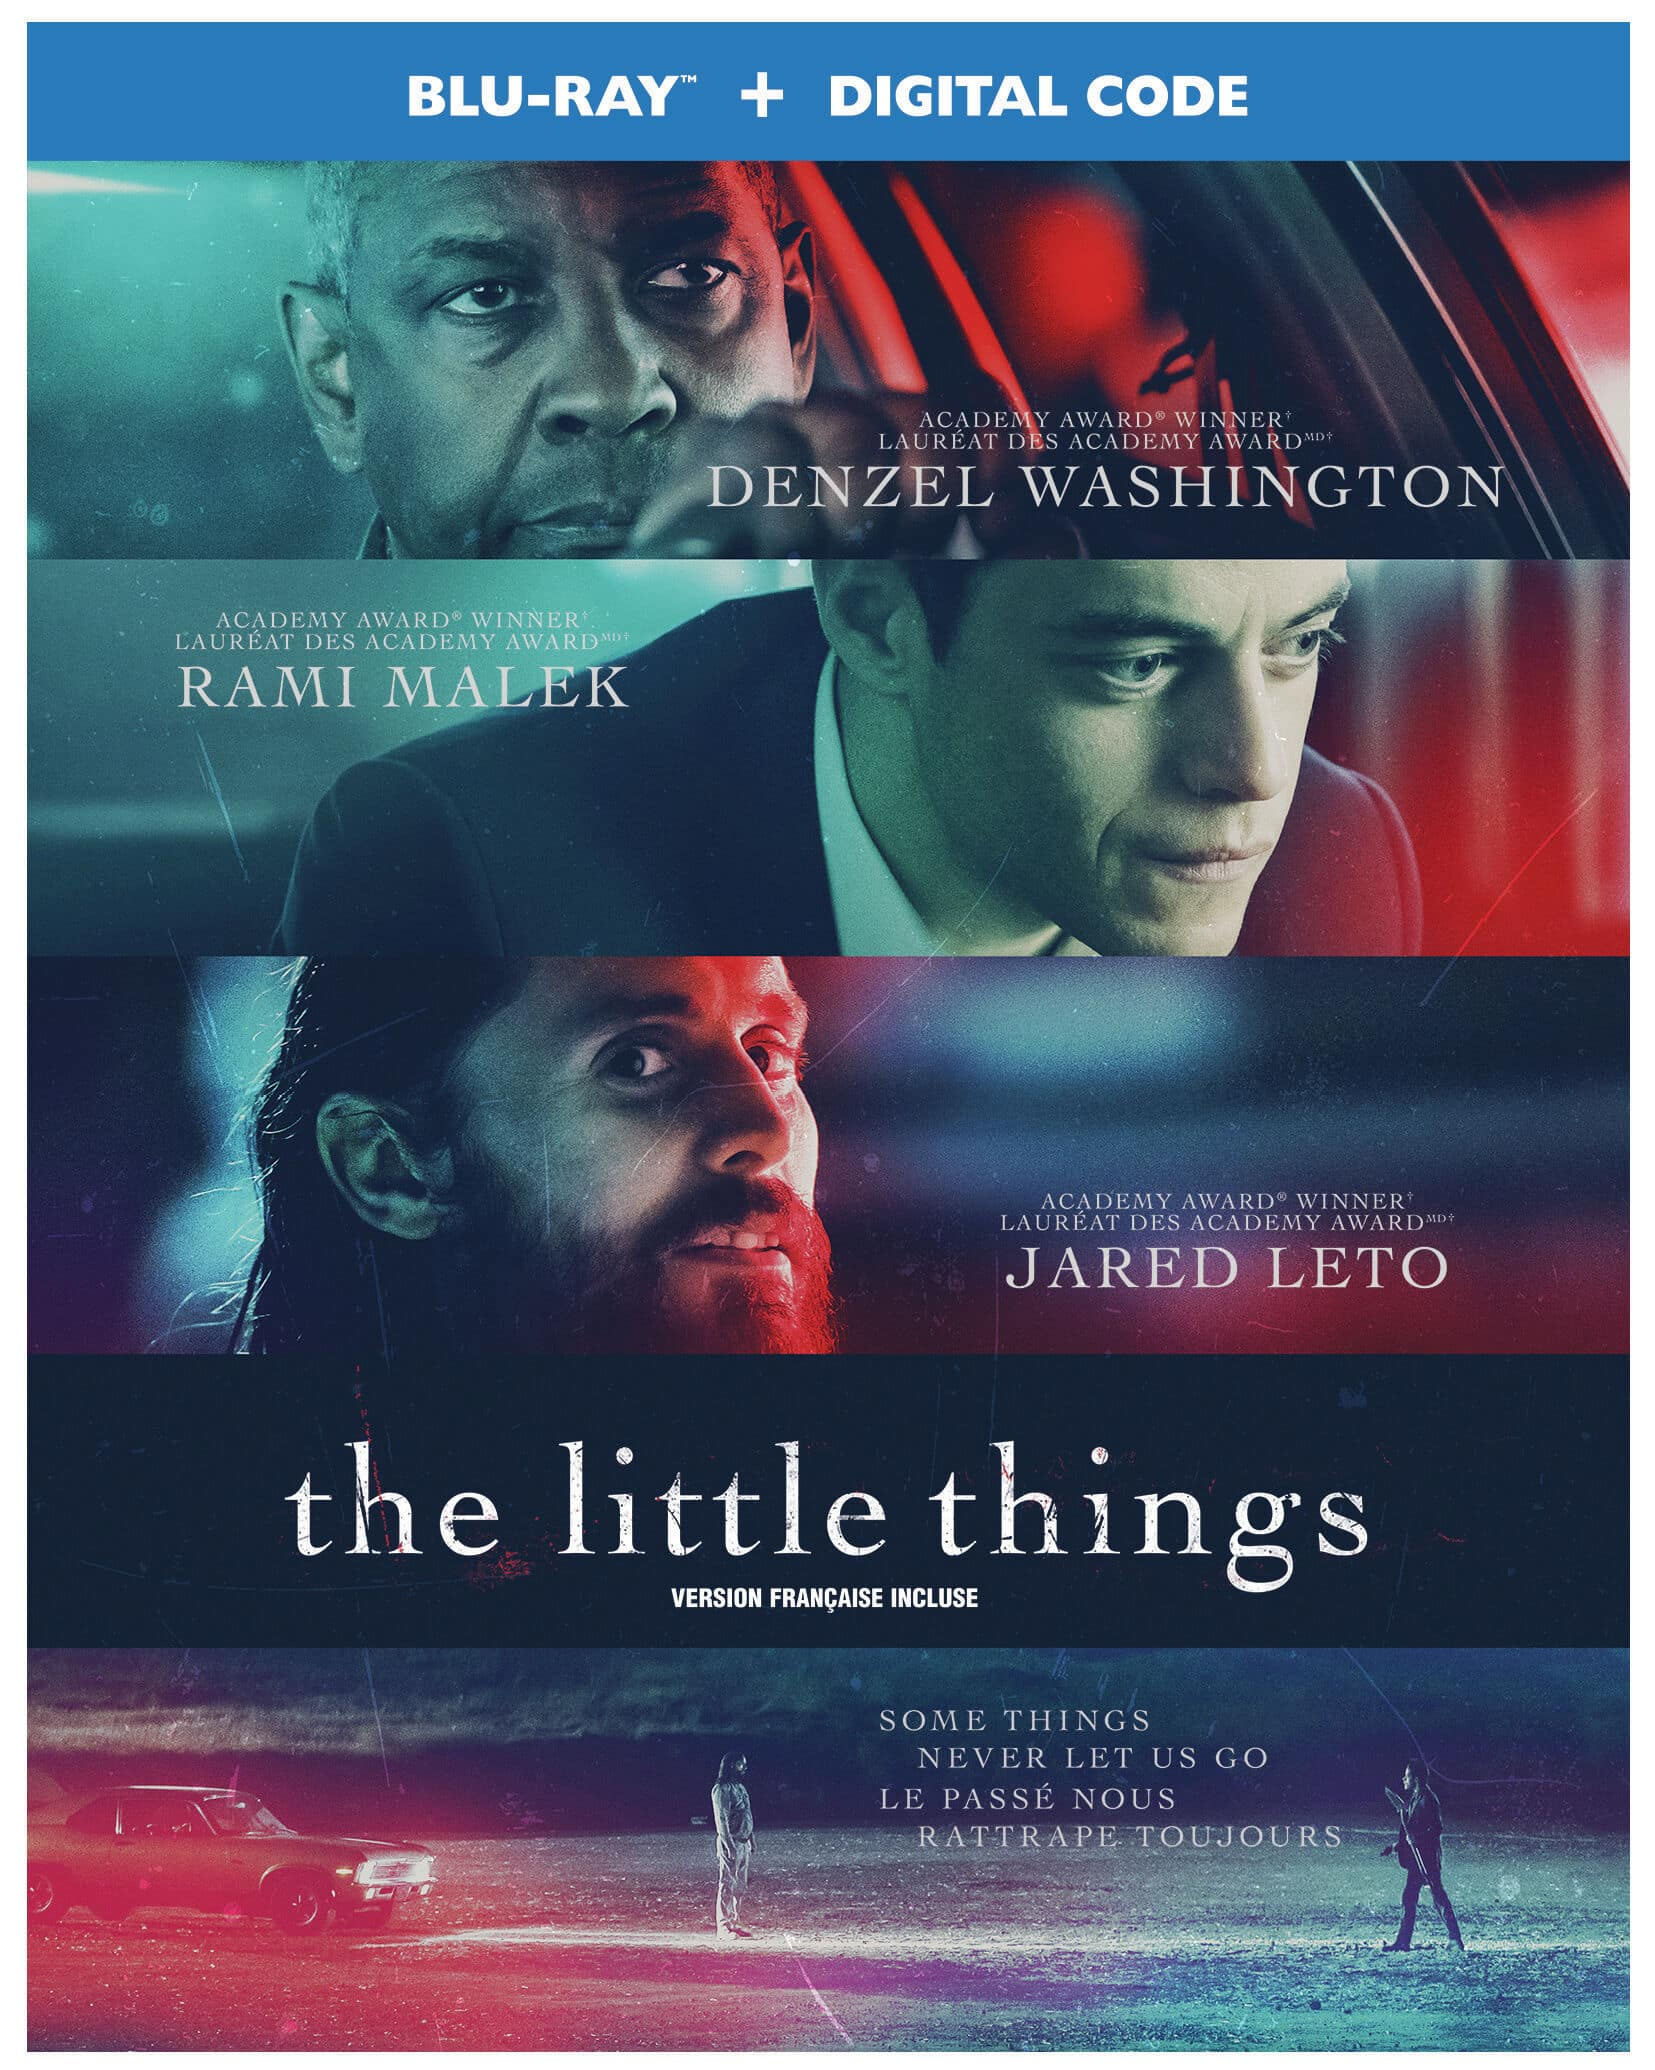 The Little Things Blu-ray DVD Box Cover Artwork